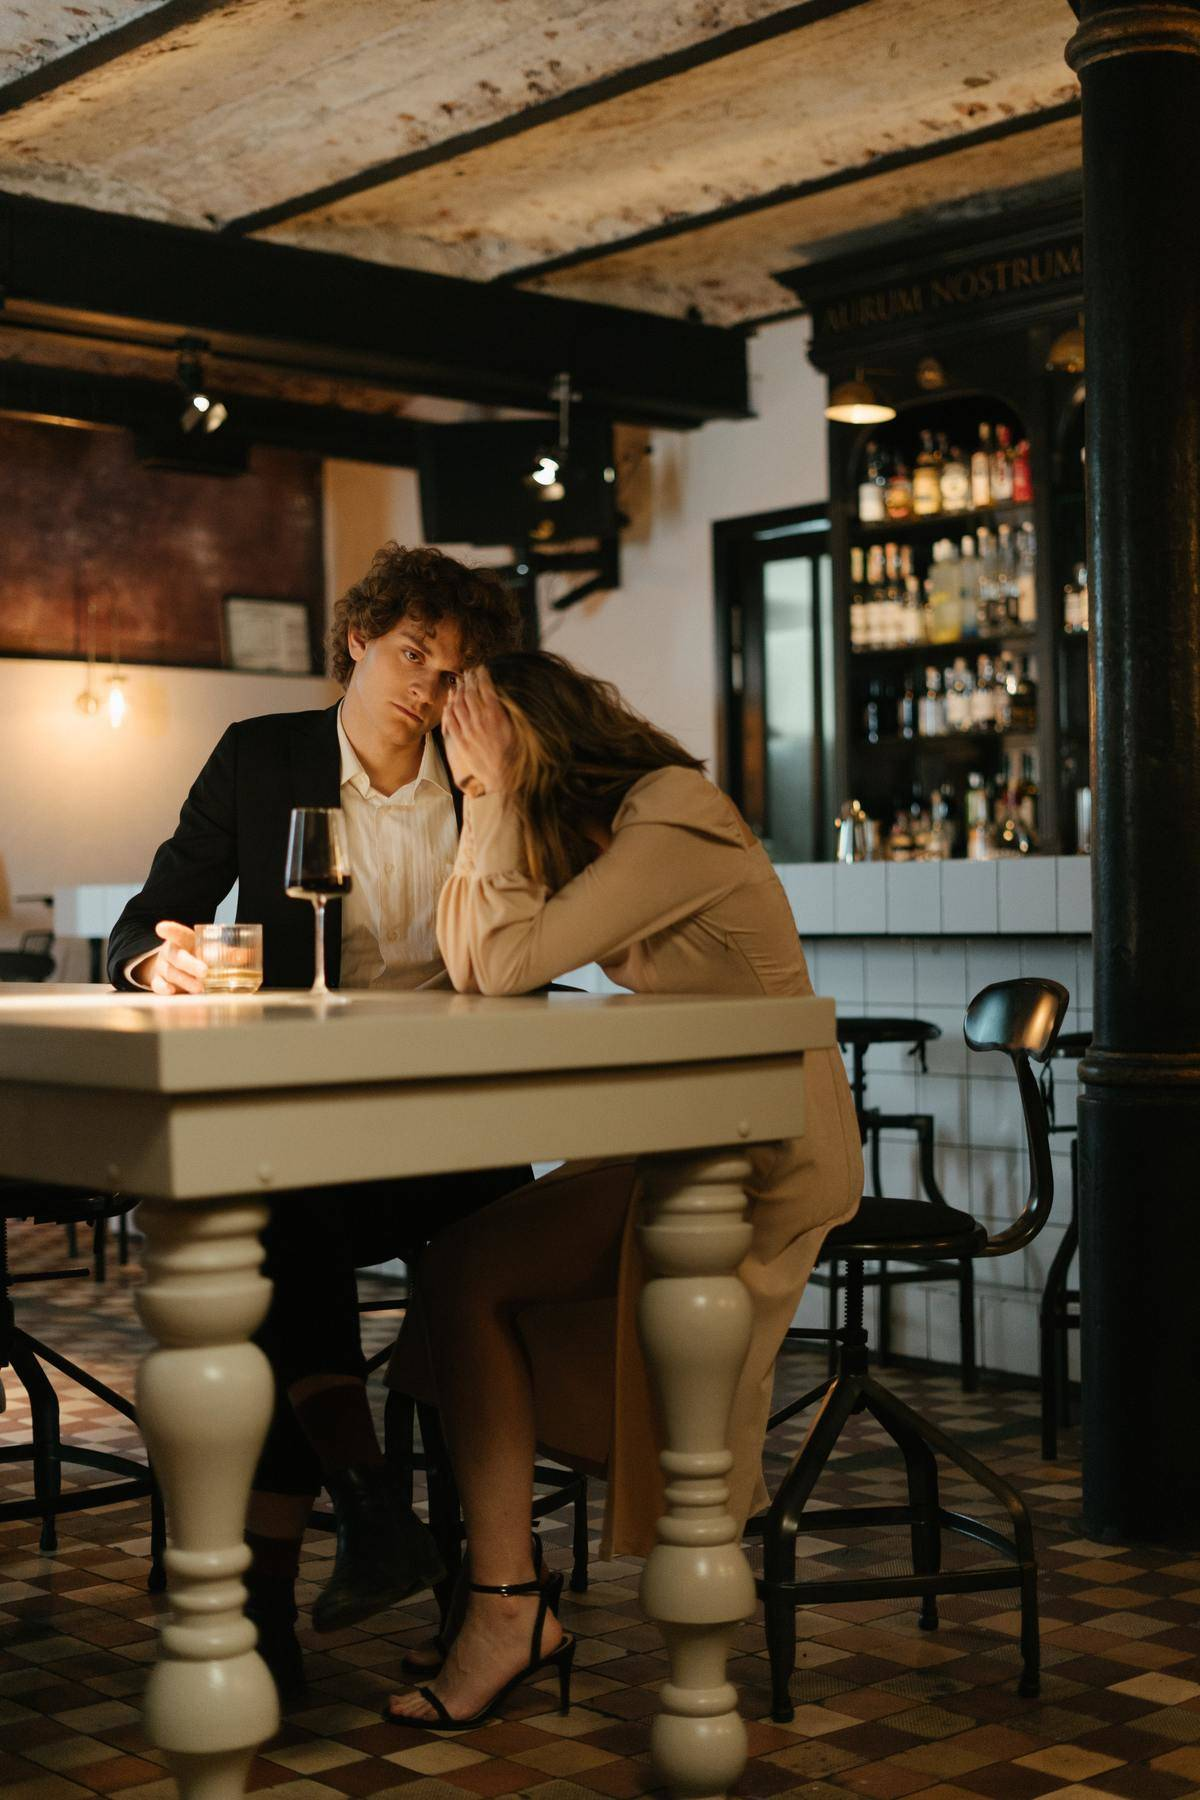 couple on date at a restaurant looking sad